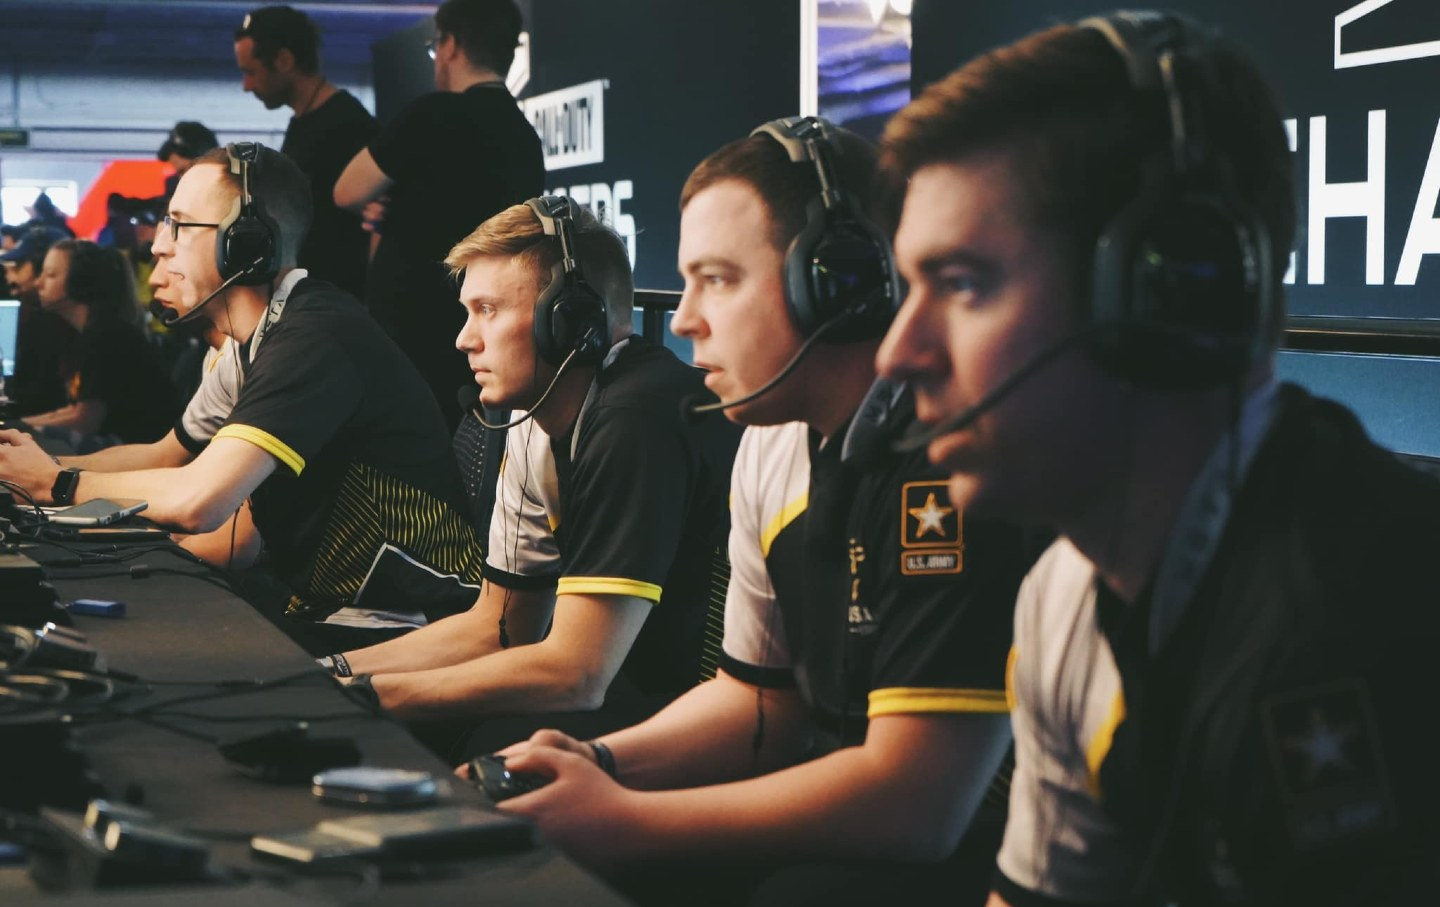 Five people with headsets look off stage at screens